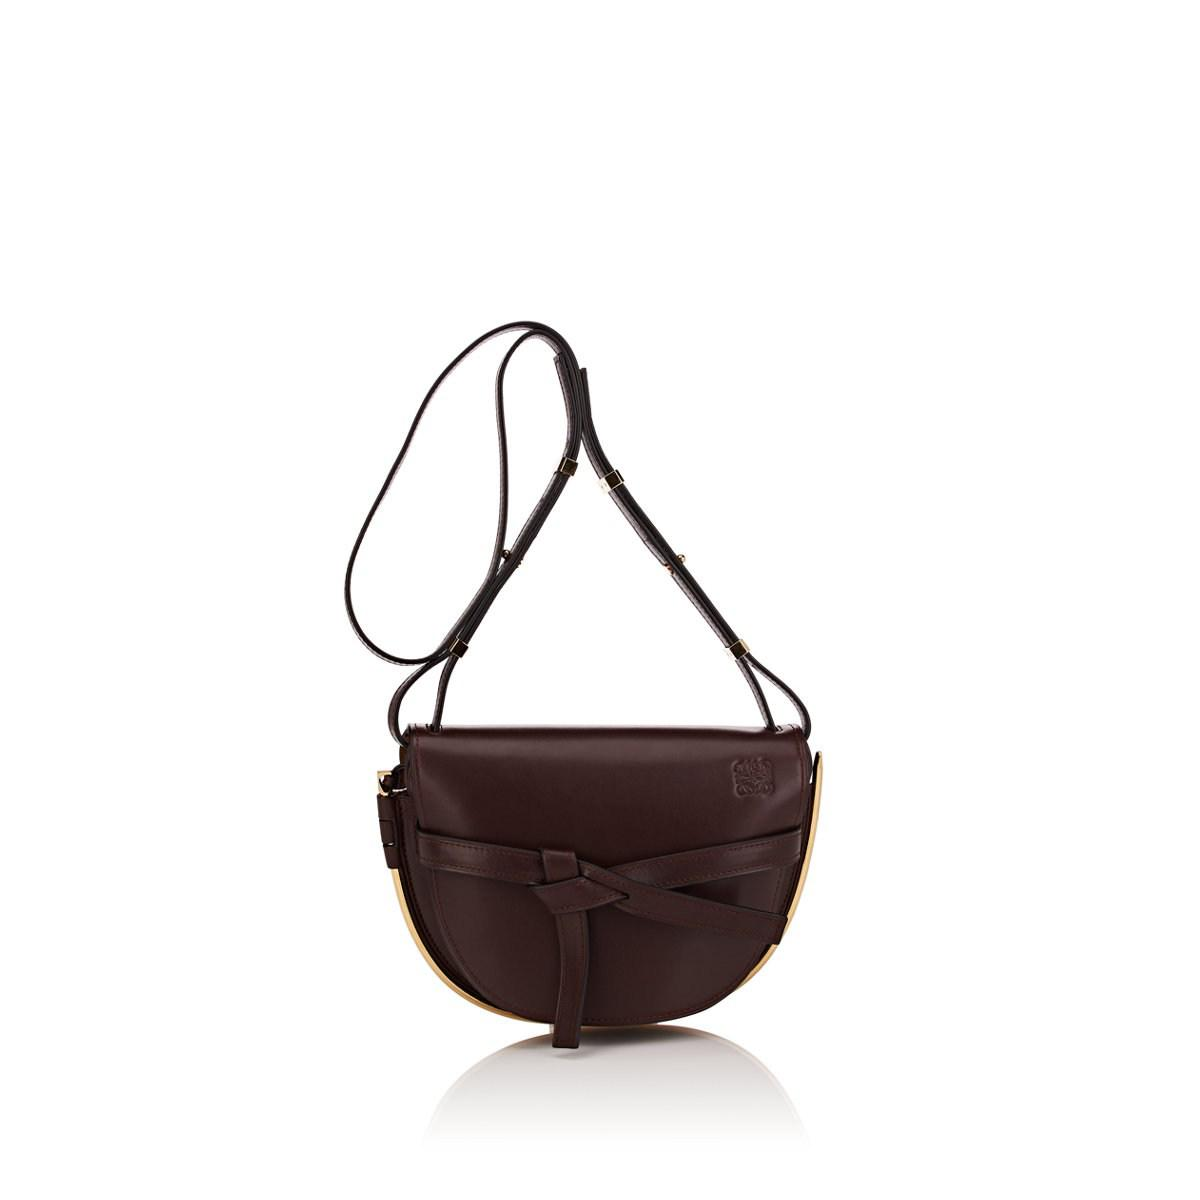 Lyst - Loewe Gate Small Leather Shoulder Bag in Brown 387e2a454f864